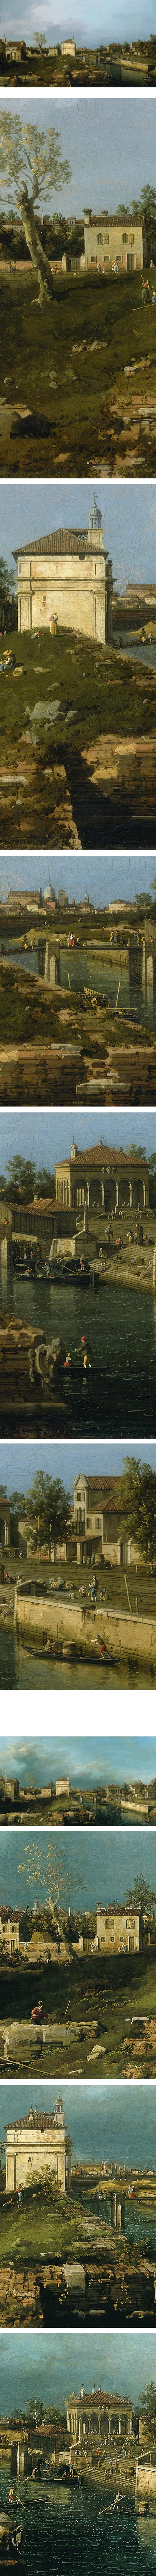 The Porta Portello, Padua; Canaletto (Giovanni Antonio Canal)